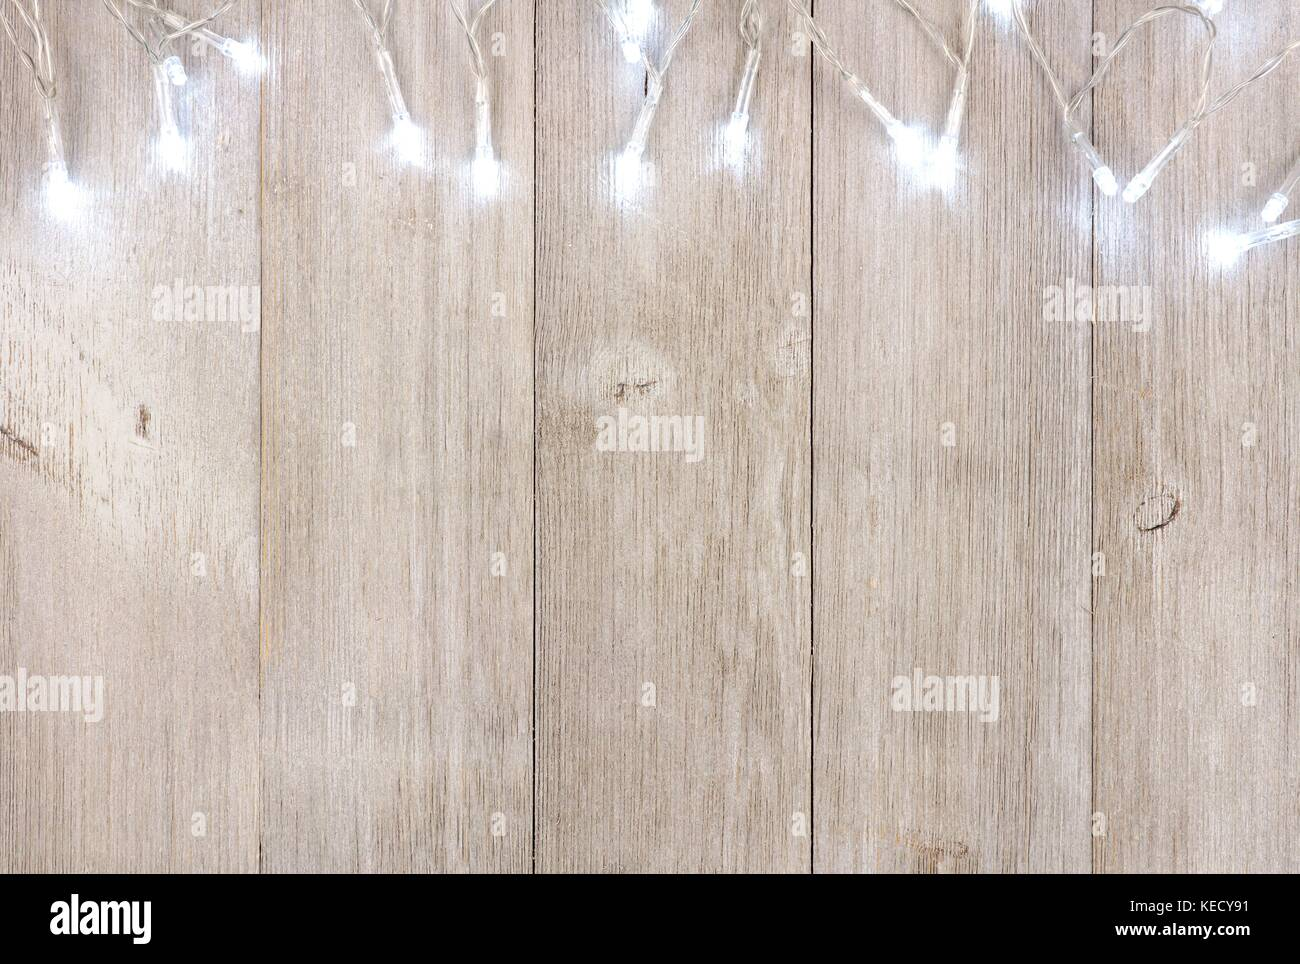 White Christmas Lights Top Border Above View On A Light Gray Wood Background